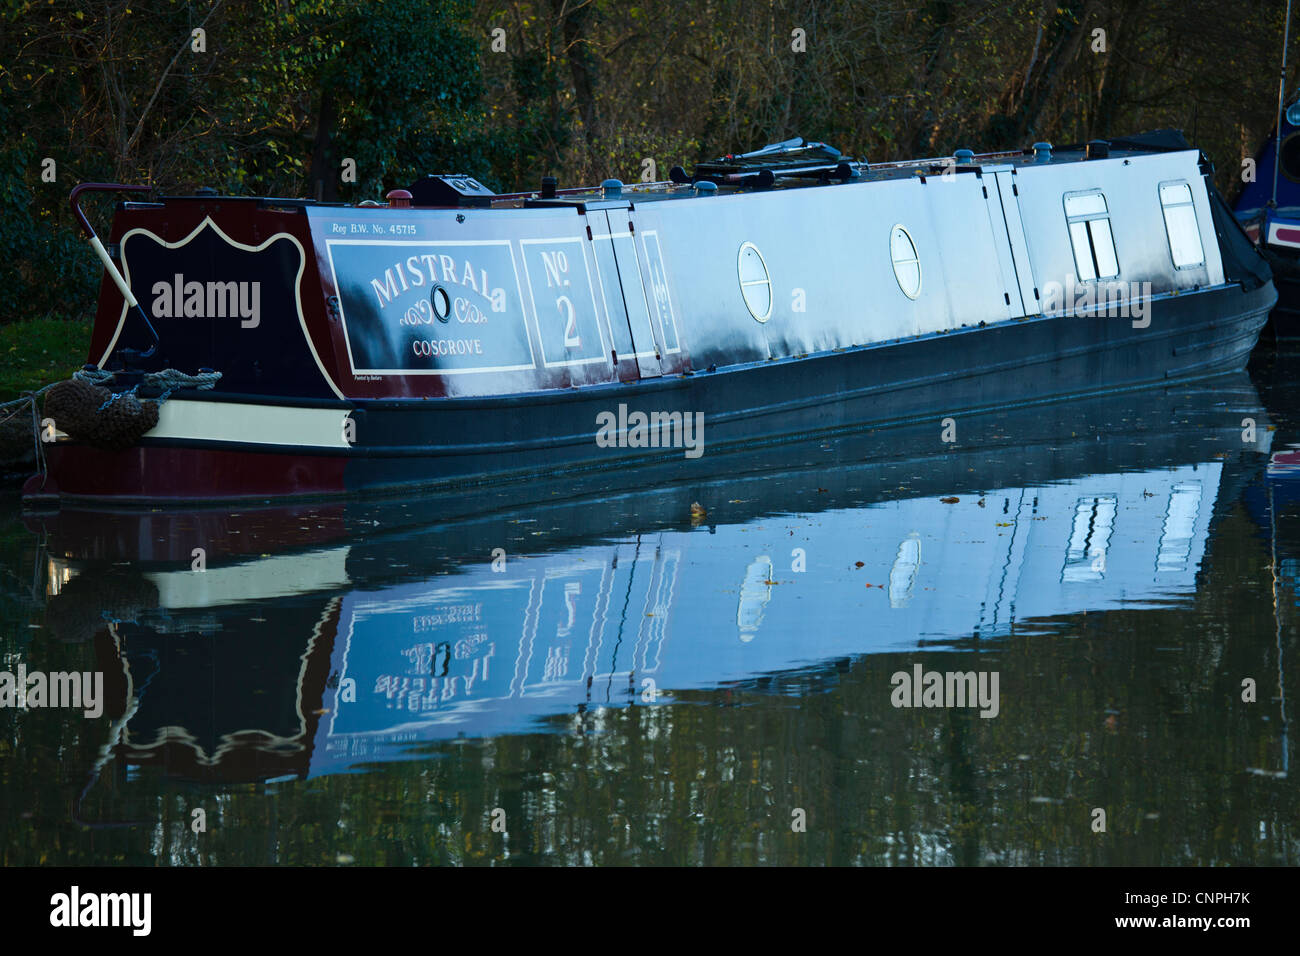 A canal boat moored on the Grand Union Canal near to Milton Keynes, UK. - Stock Image